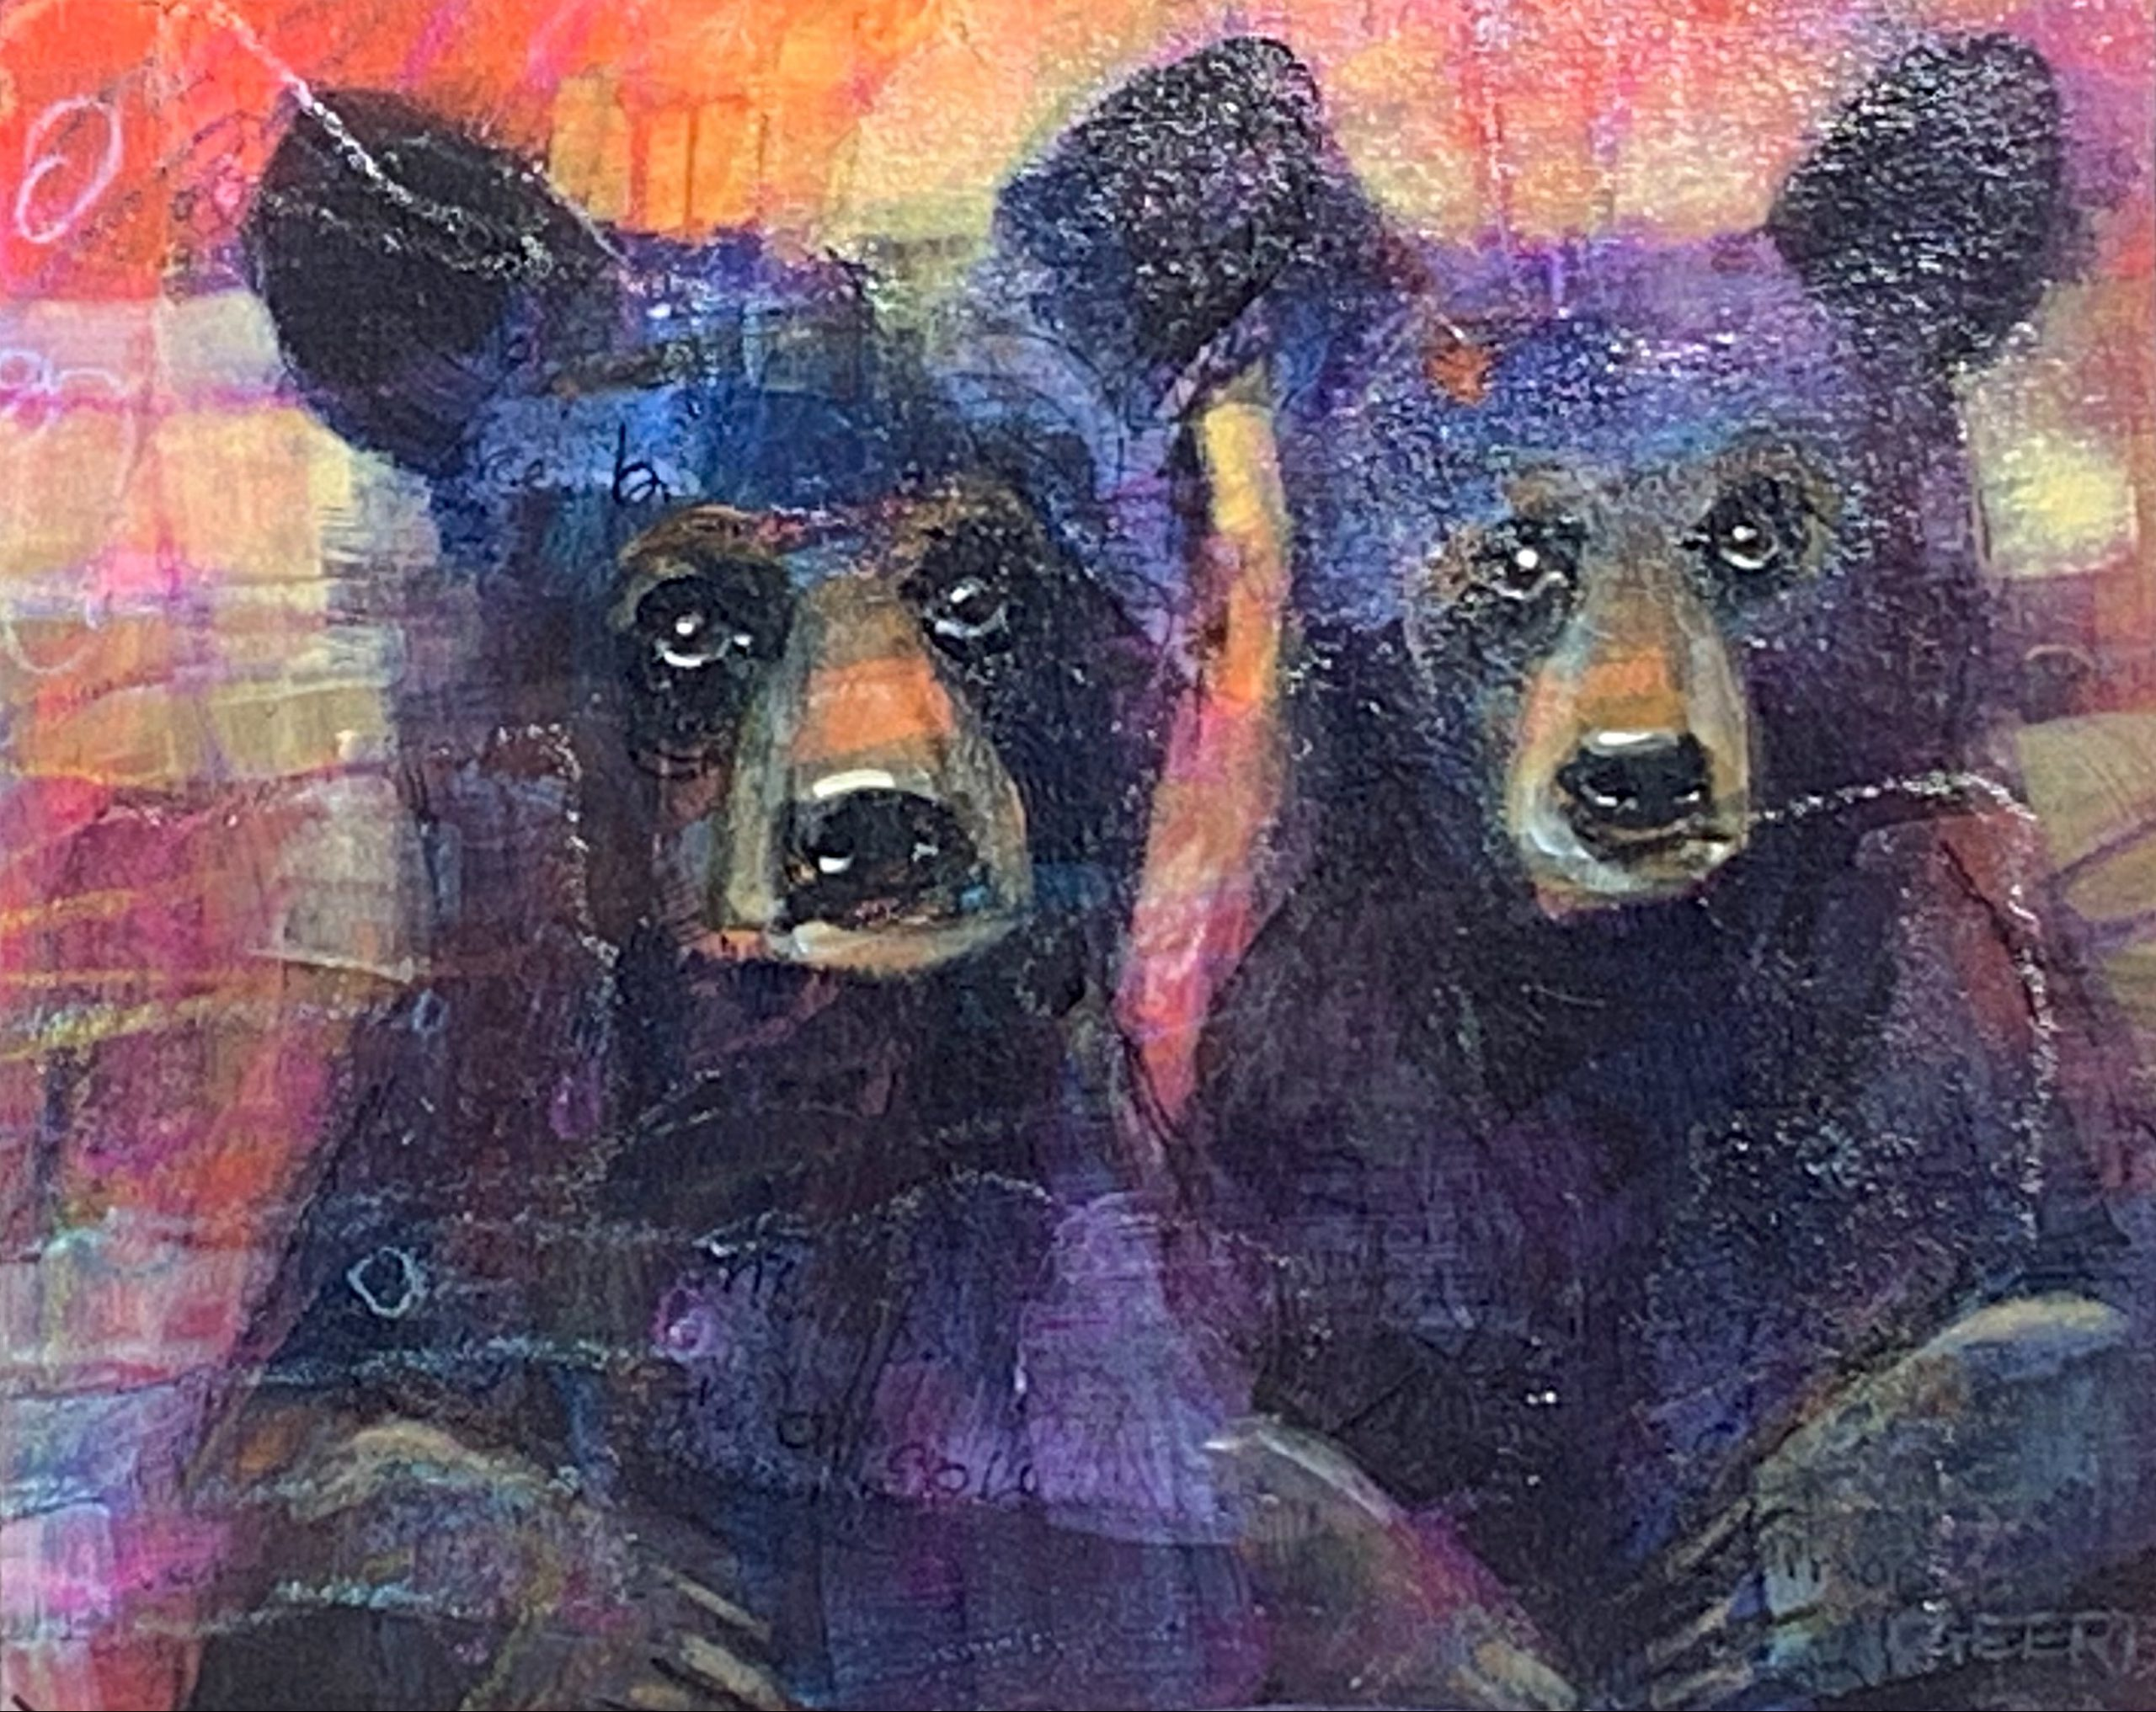 Brothers, mixed media bear cub painting by Connie Geerts   Effusion Art Gallery + Cast Glass Studio, Invermere BC